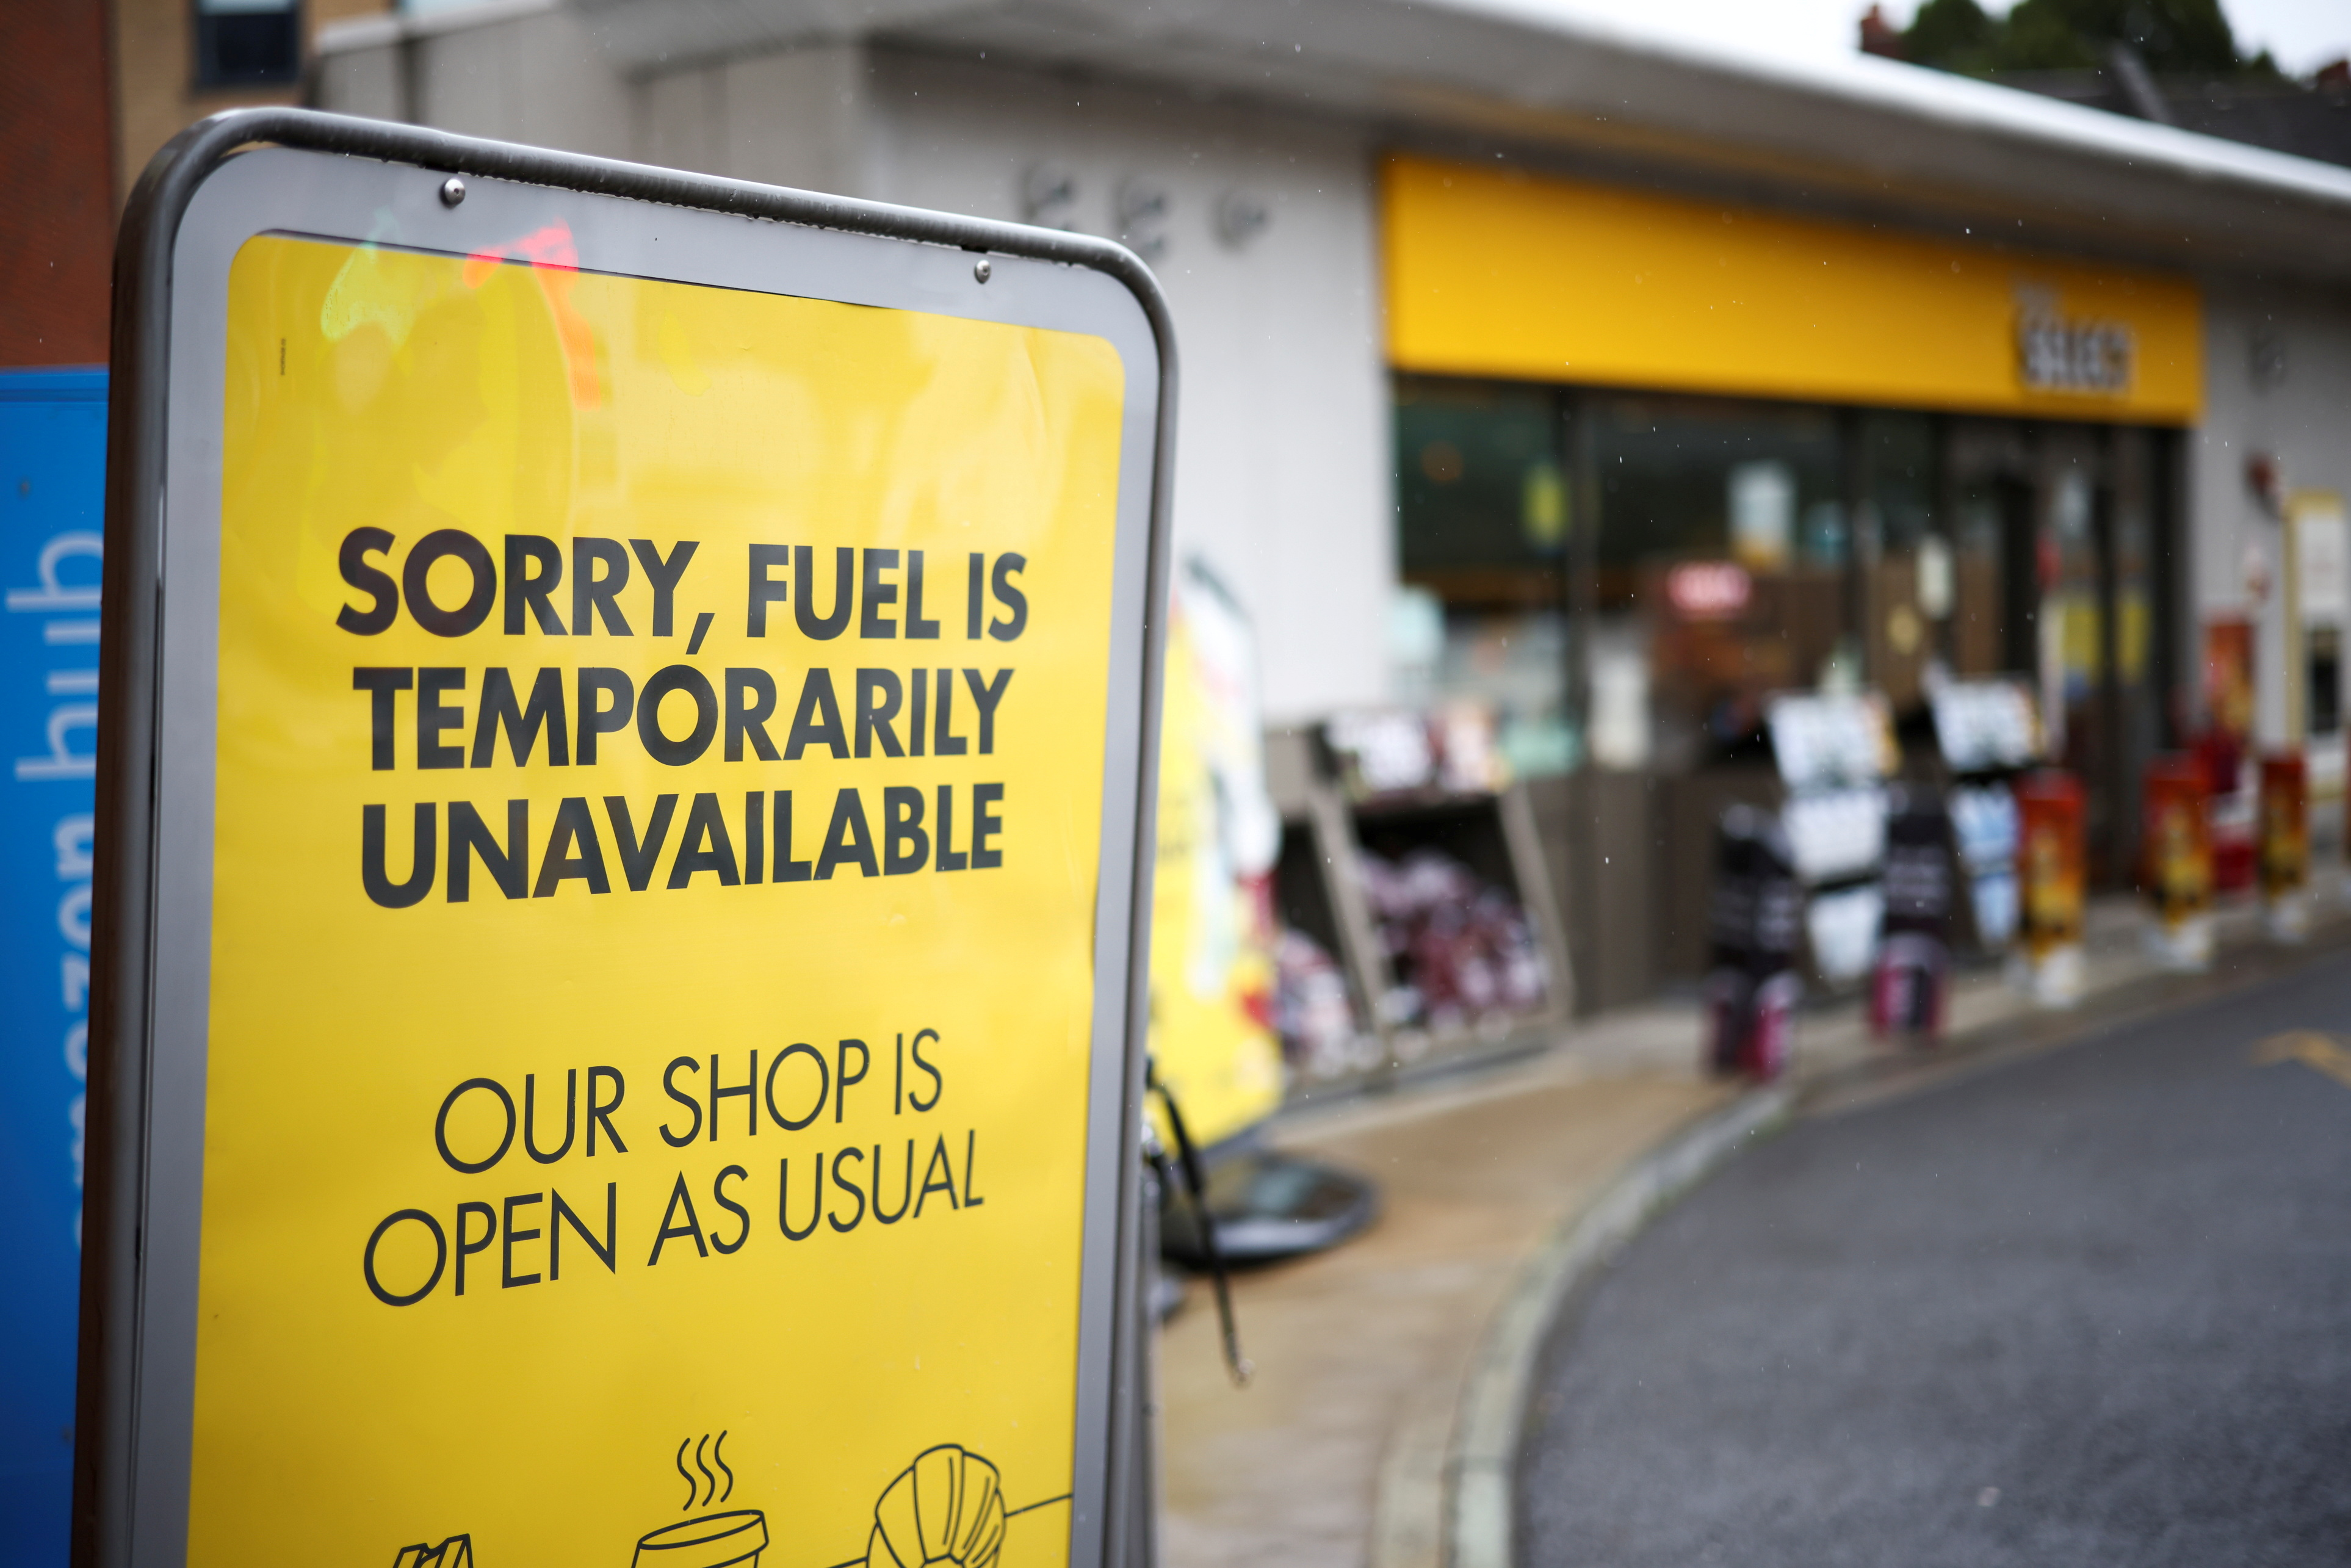 A sign informing customers that fuel has run out is pictured at a Shell fuel station in London, Britain, October 2, 2021. REUTERS/Henry Nicholls/File Photo